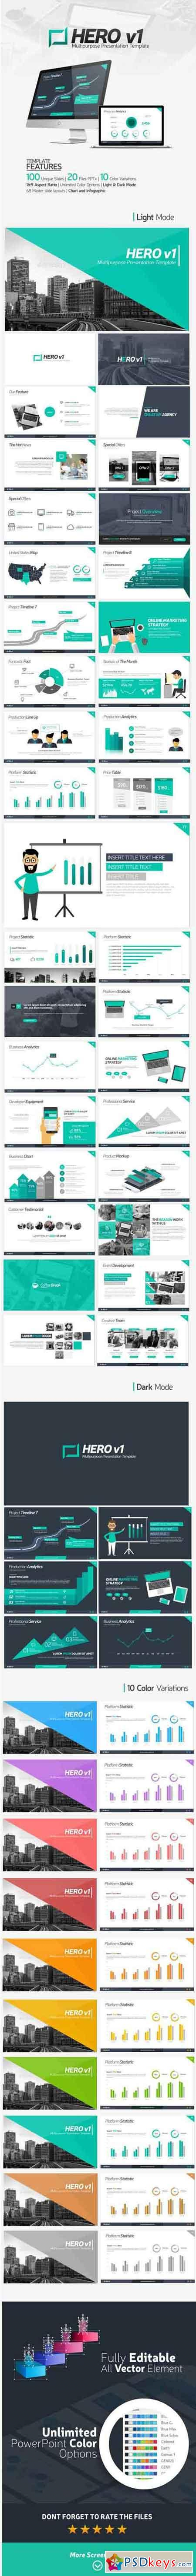 HERO v1 Presentation Template 16318628